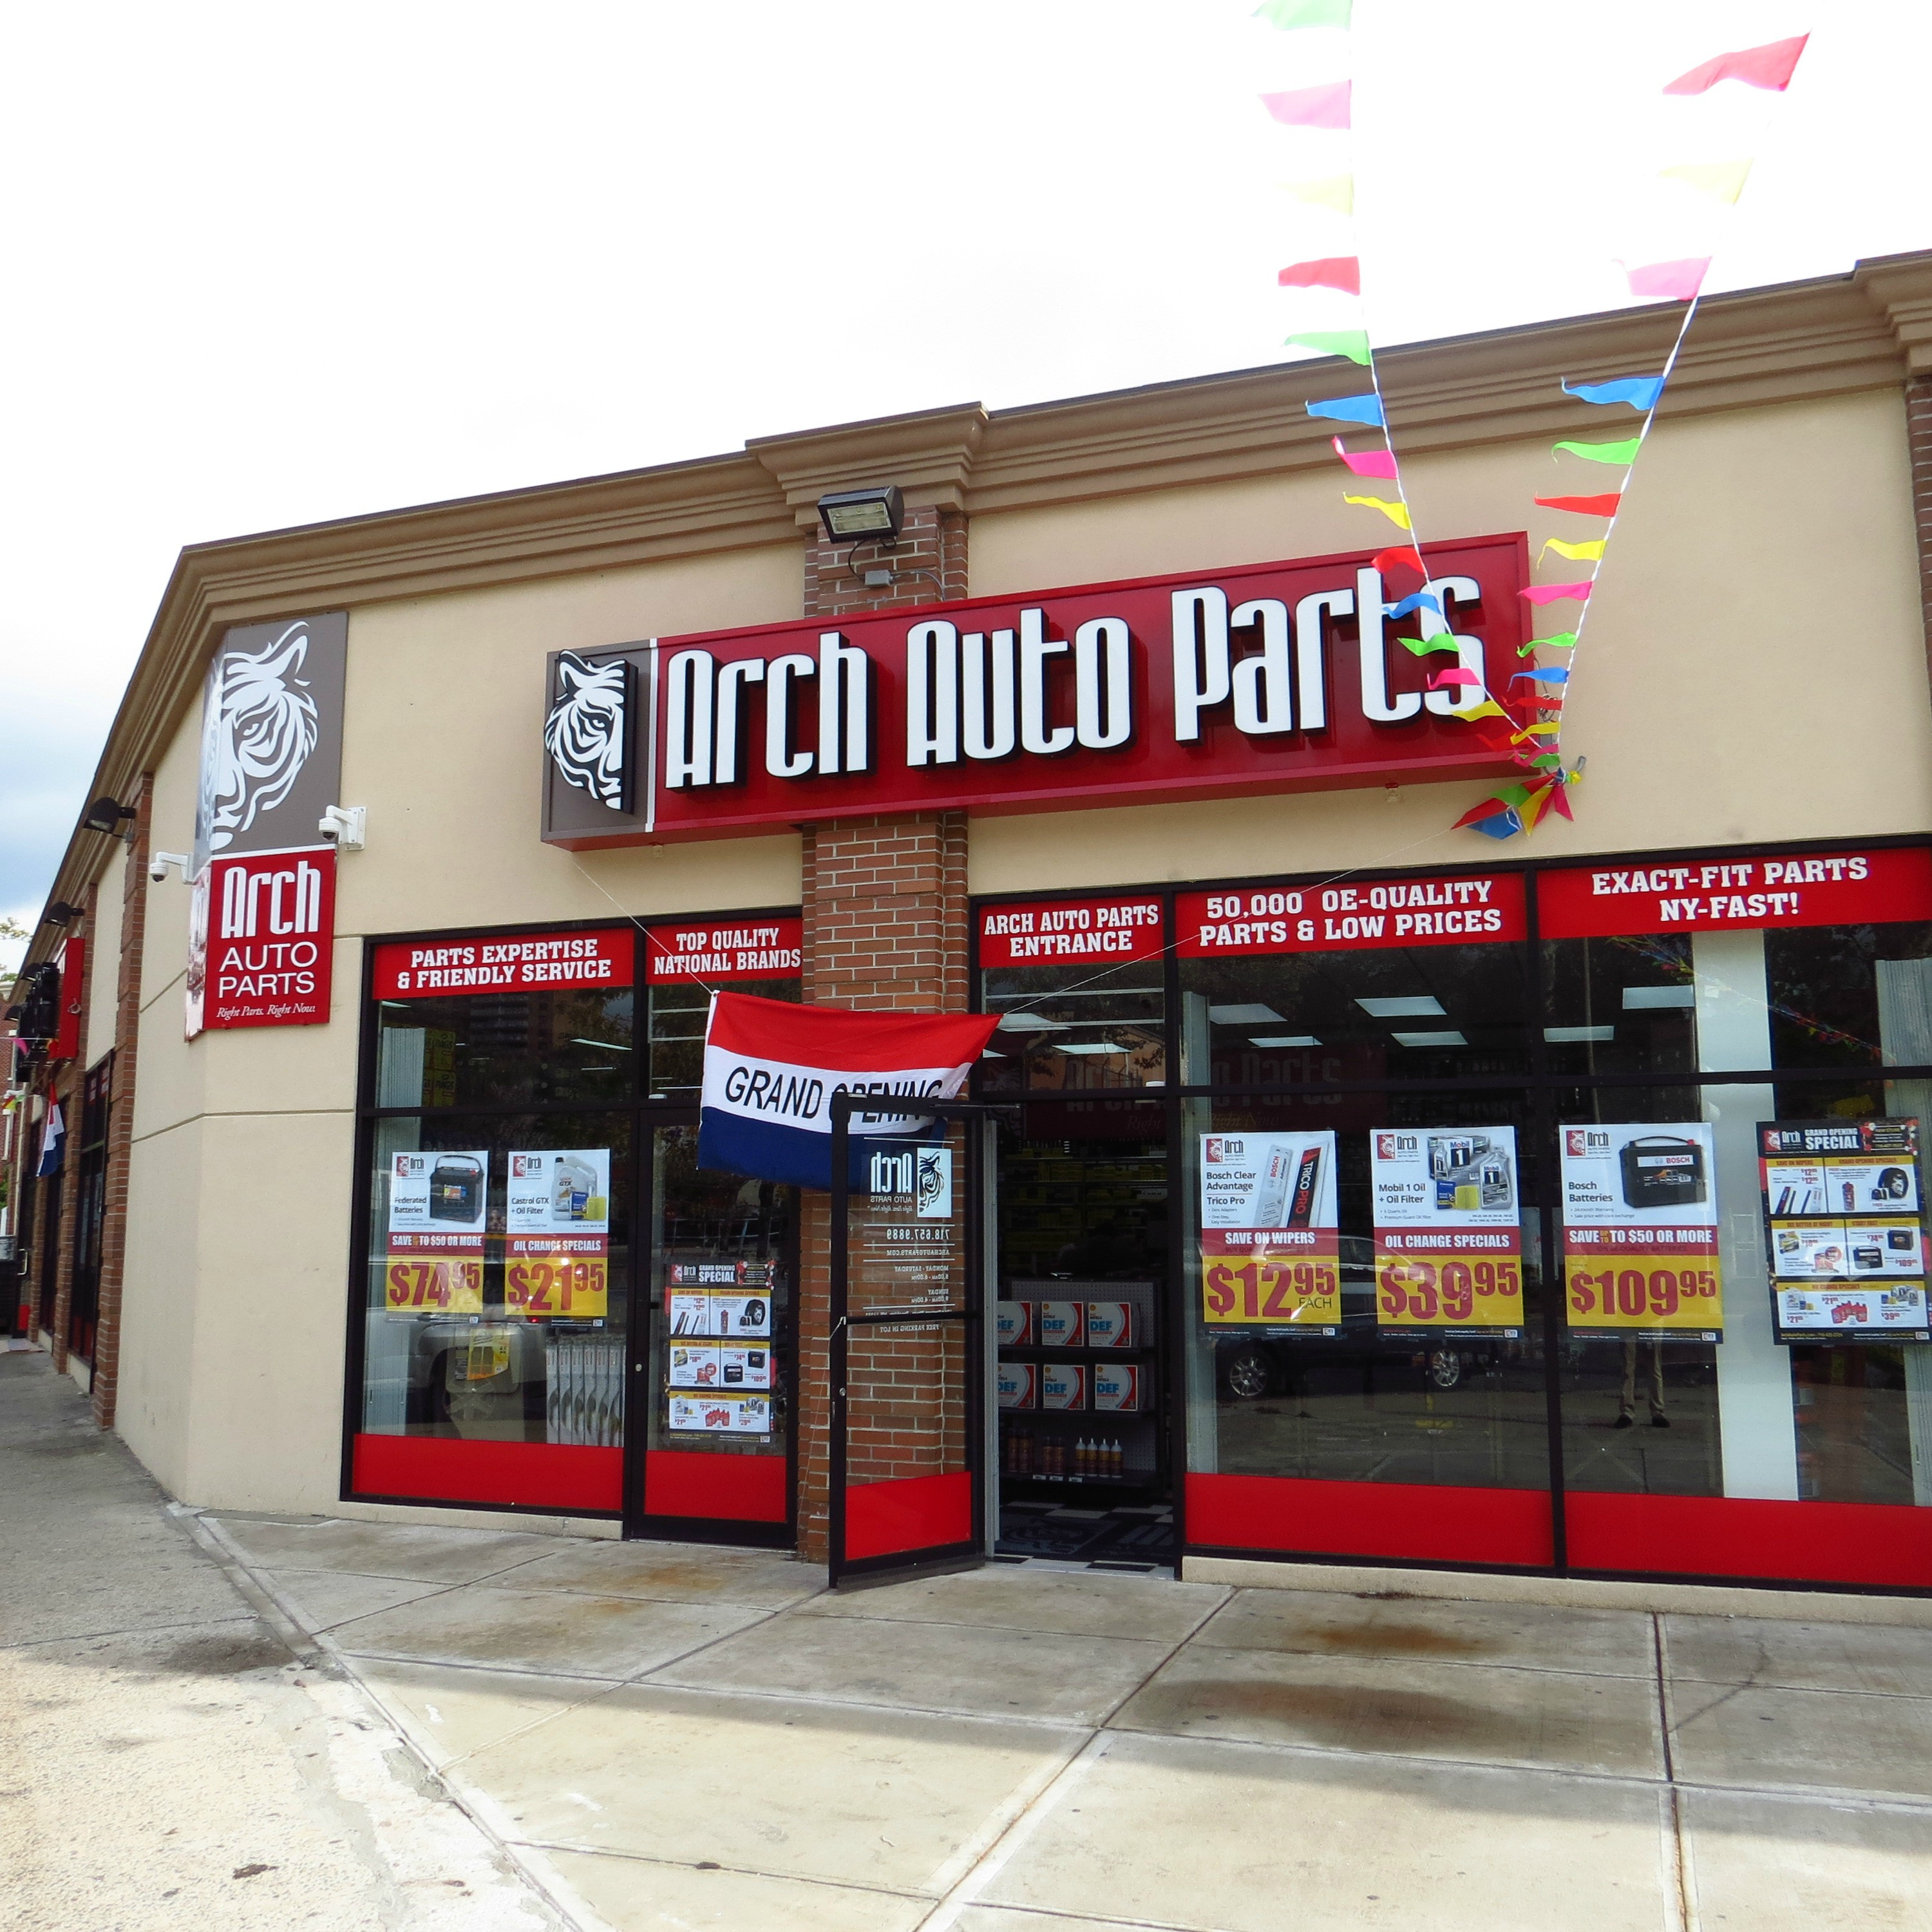 Arch Auto Parts Opens 13th Store In Brooklyn; Extends